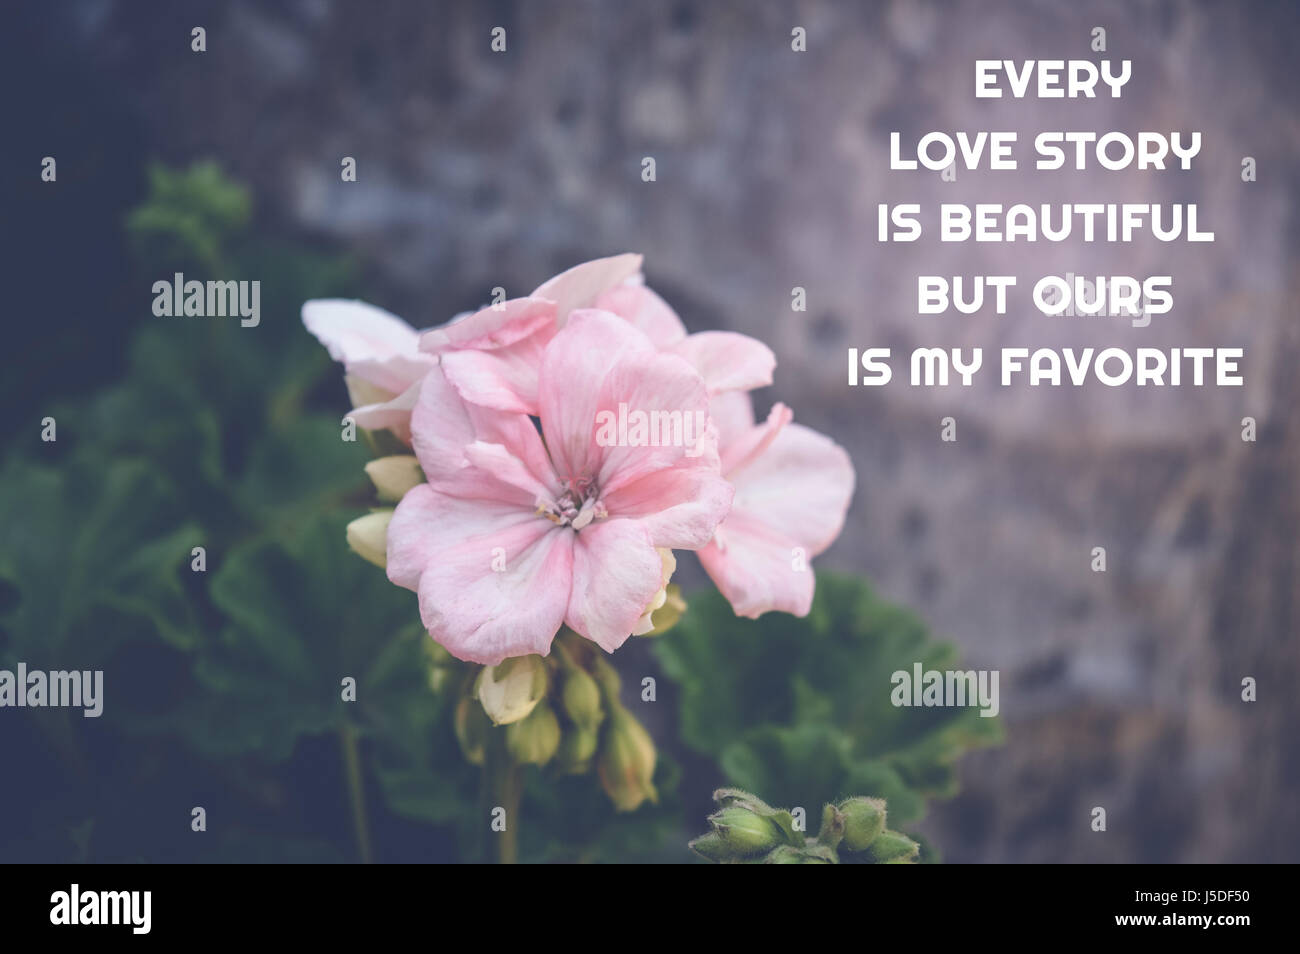 Flower And Love Quotes Love Quote With Pink Flower Background Every Love Story Is